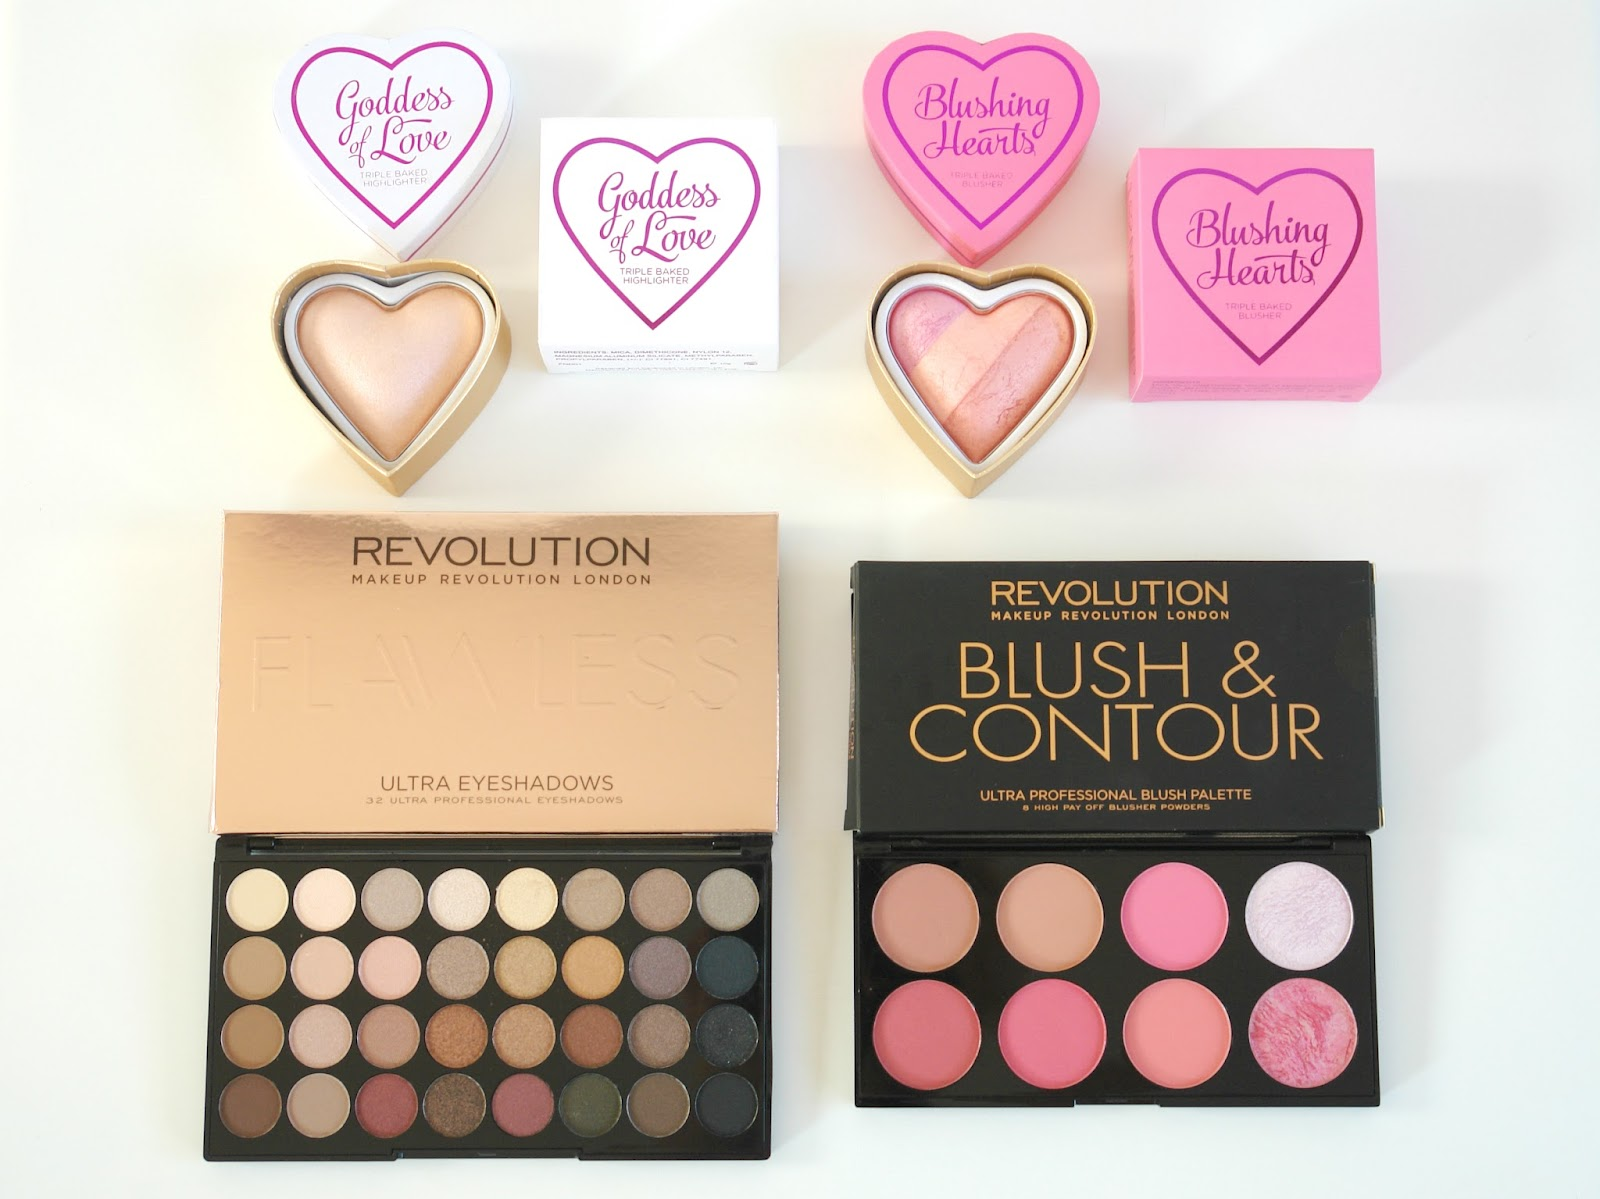 Makeup Revloution haul, Makeup Revolution, beauty, make up, eye shadows, blusher, palette, bronzer, highlighter, UK blogger, top beauty blog, Ultra 32 Shade Eyeshadow Palette FLAWLESS,  Ultra Blush and Contour Palette in Sugar and Spice, I ♡ Makeup Blushing Heart in Candy Queen of Hearts,  I ♡ Makeup Goddess of Love Highlighter